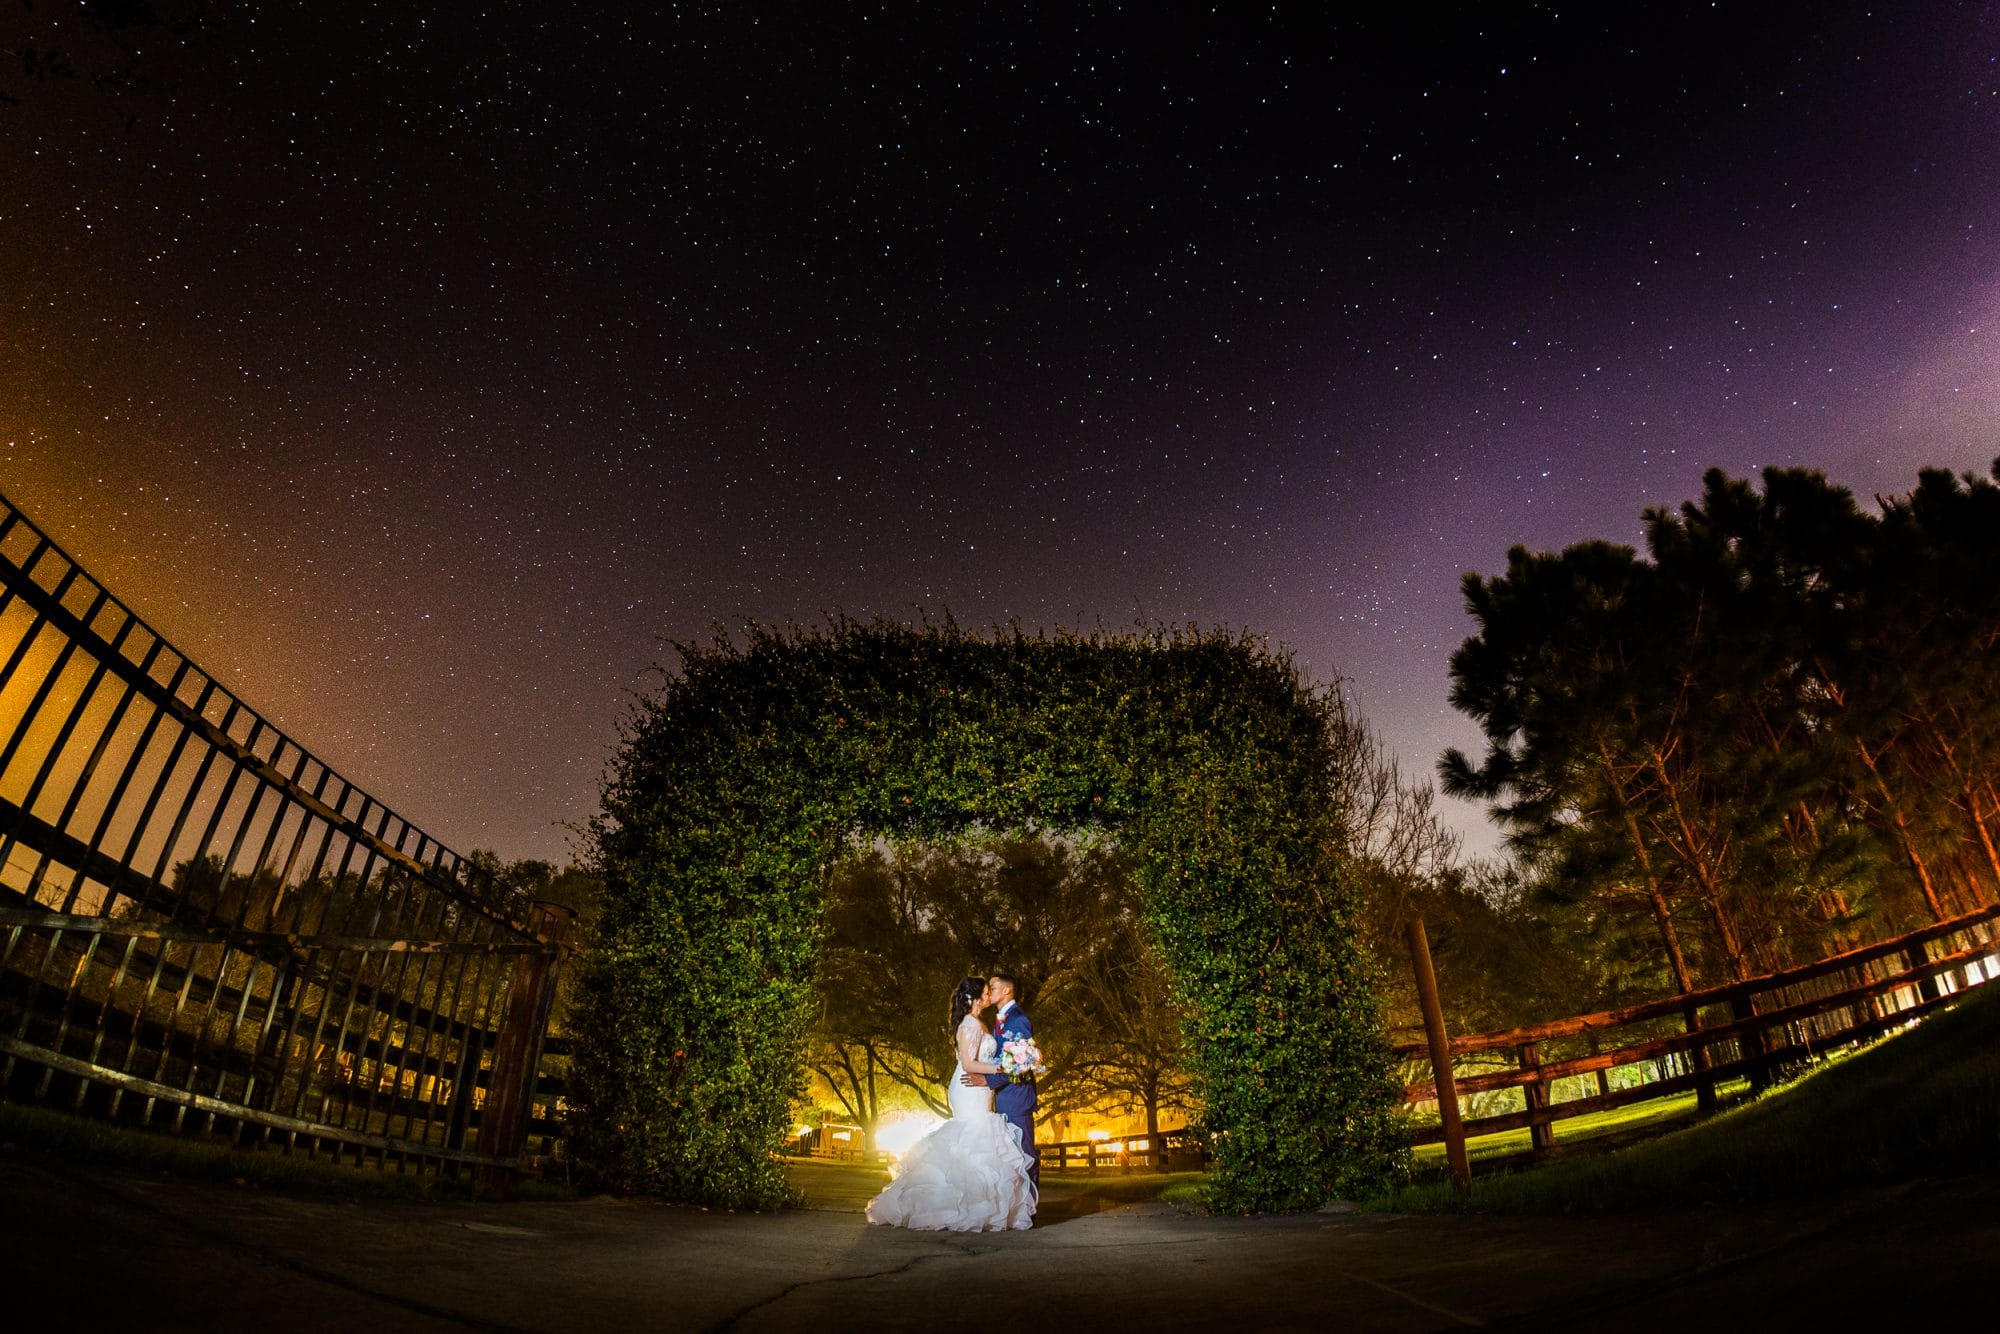 Steven Miller Photography - bride and groom kissing under vine archway with starry sky behind them